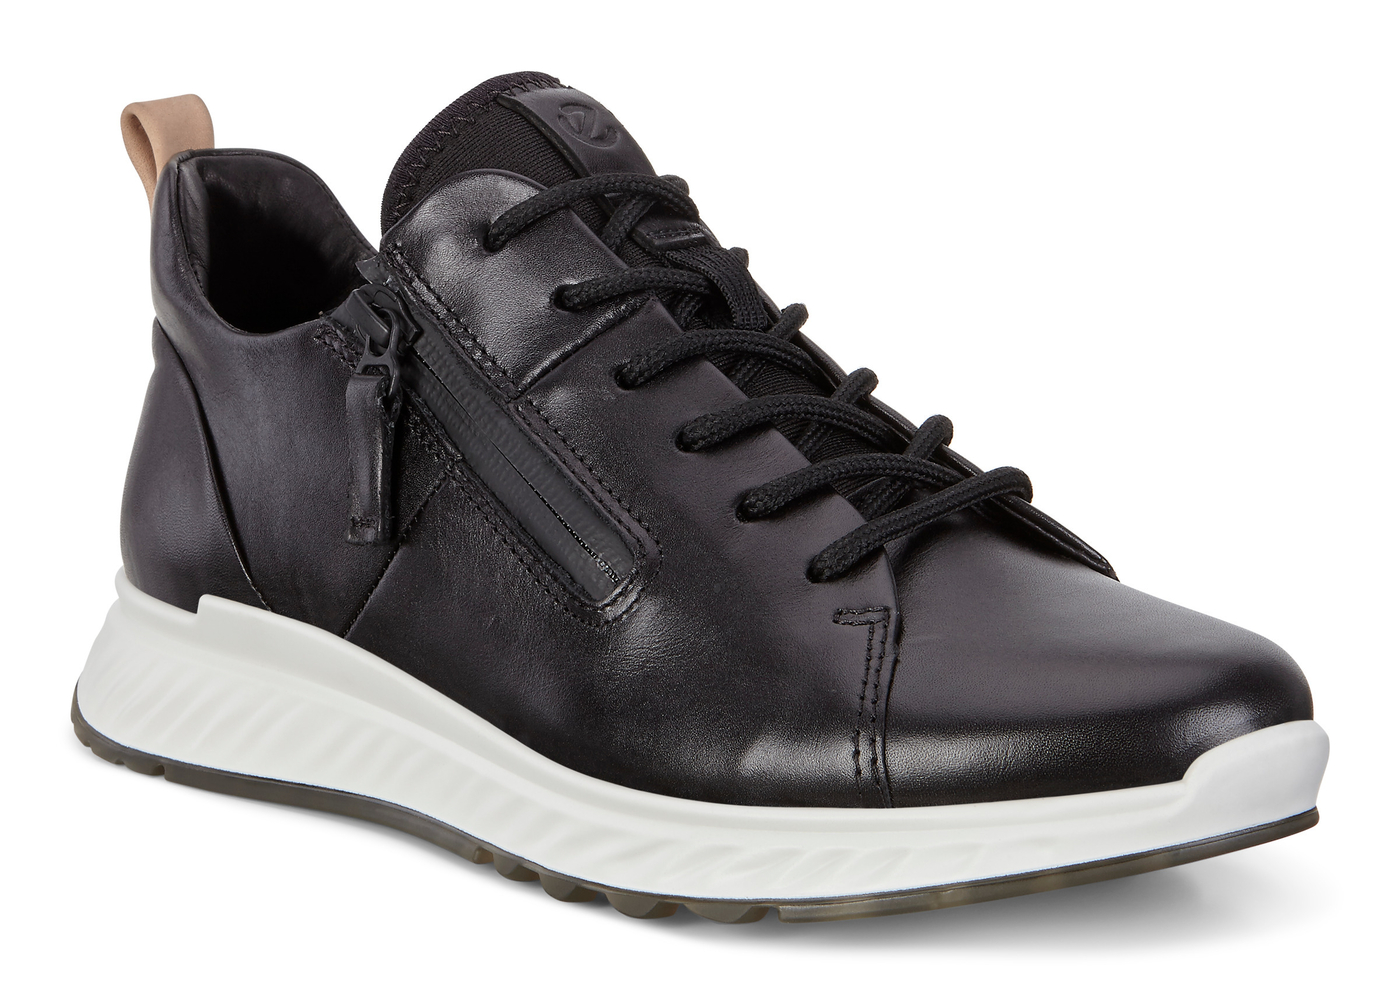 ECCO ST1 Womens Mid Cut Athleisure Sneaker Lace with Zip